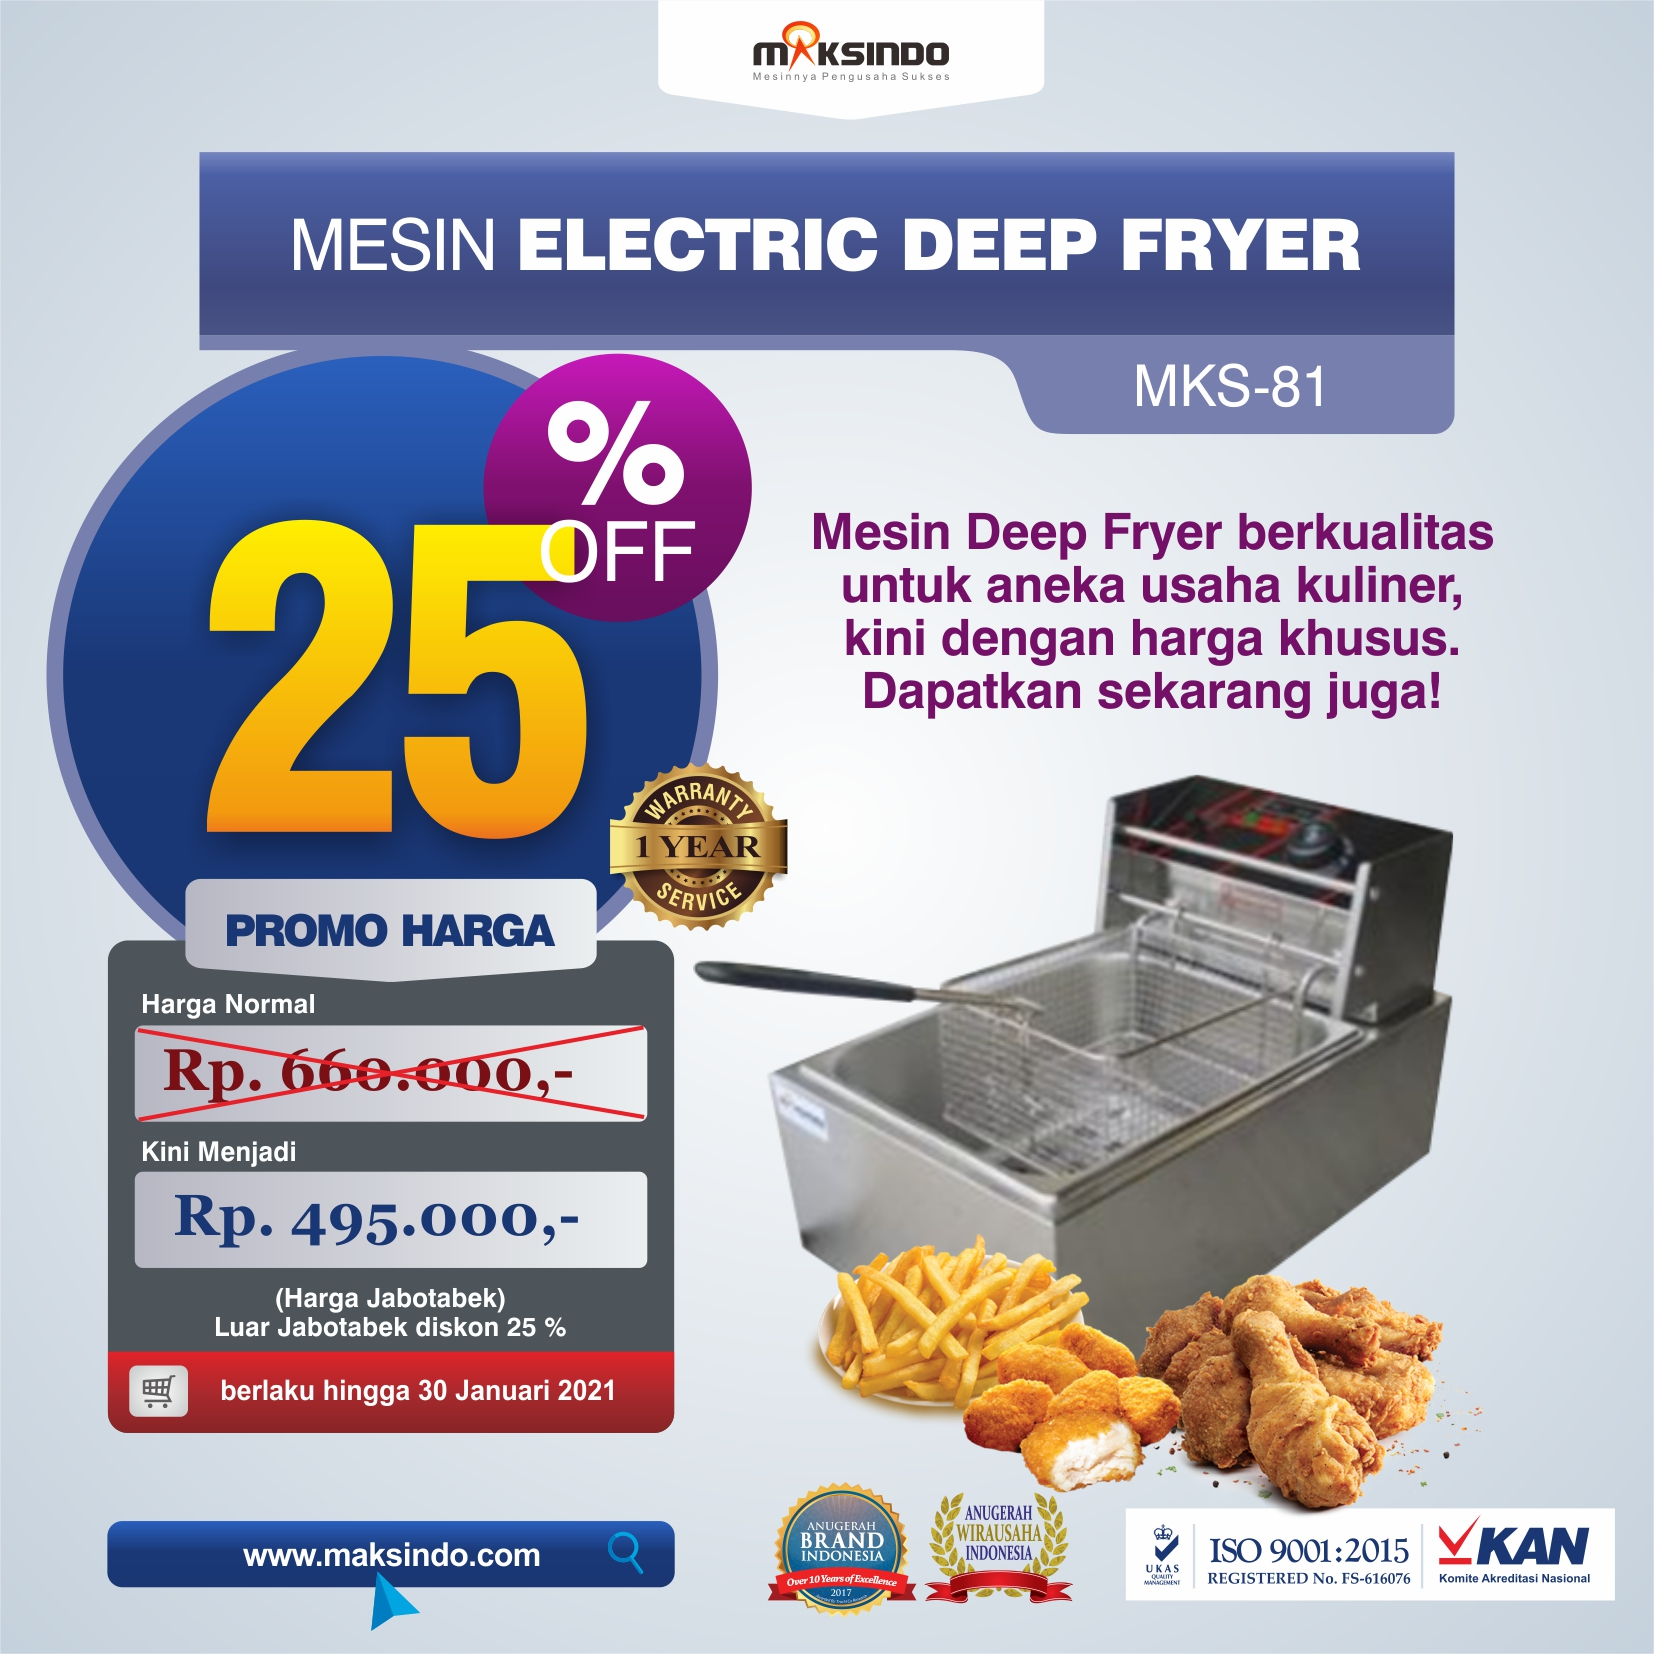 Jual Mesin Electric Deep Fryer MKS-81 di Medan